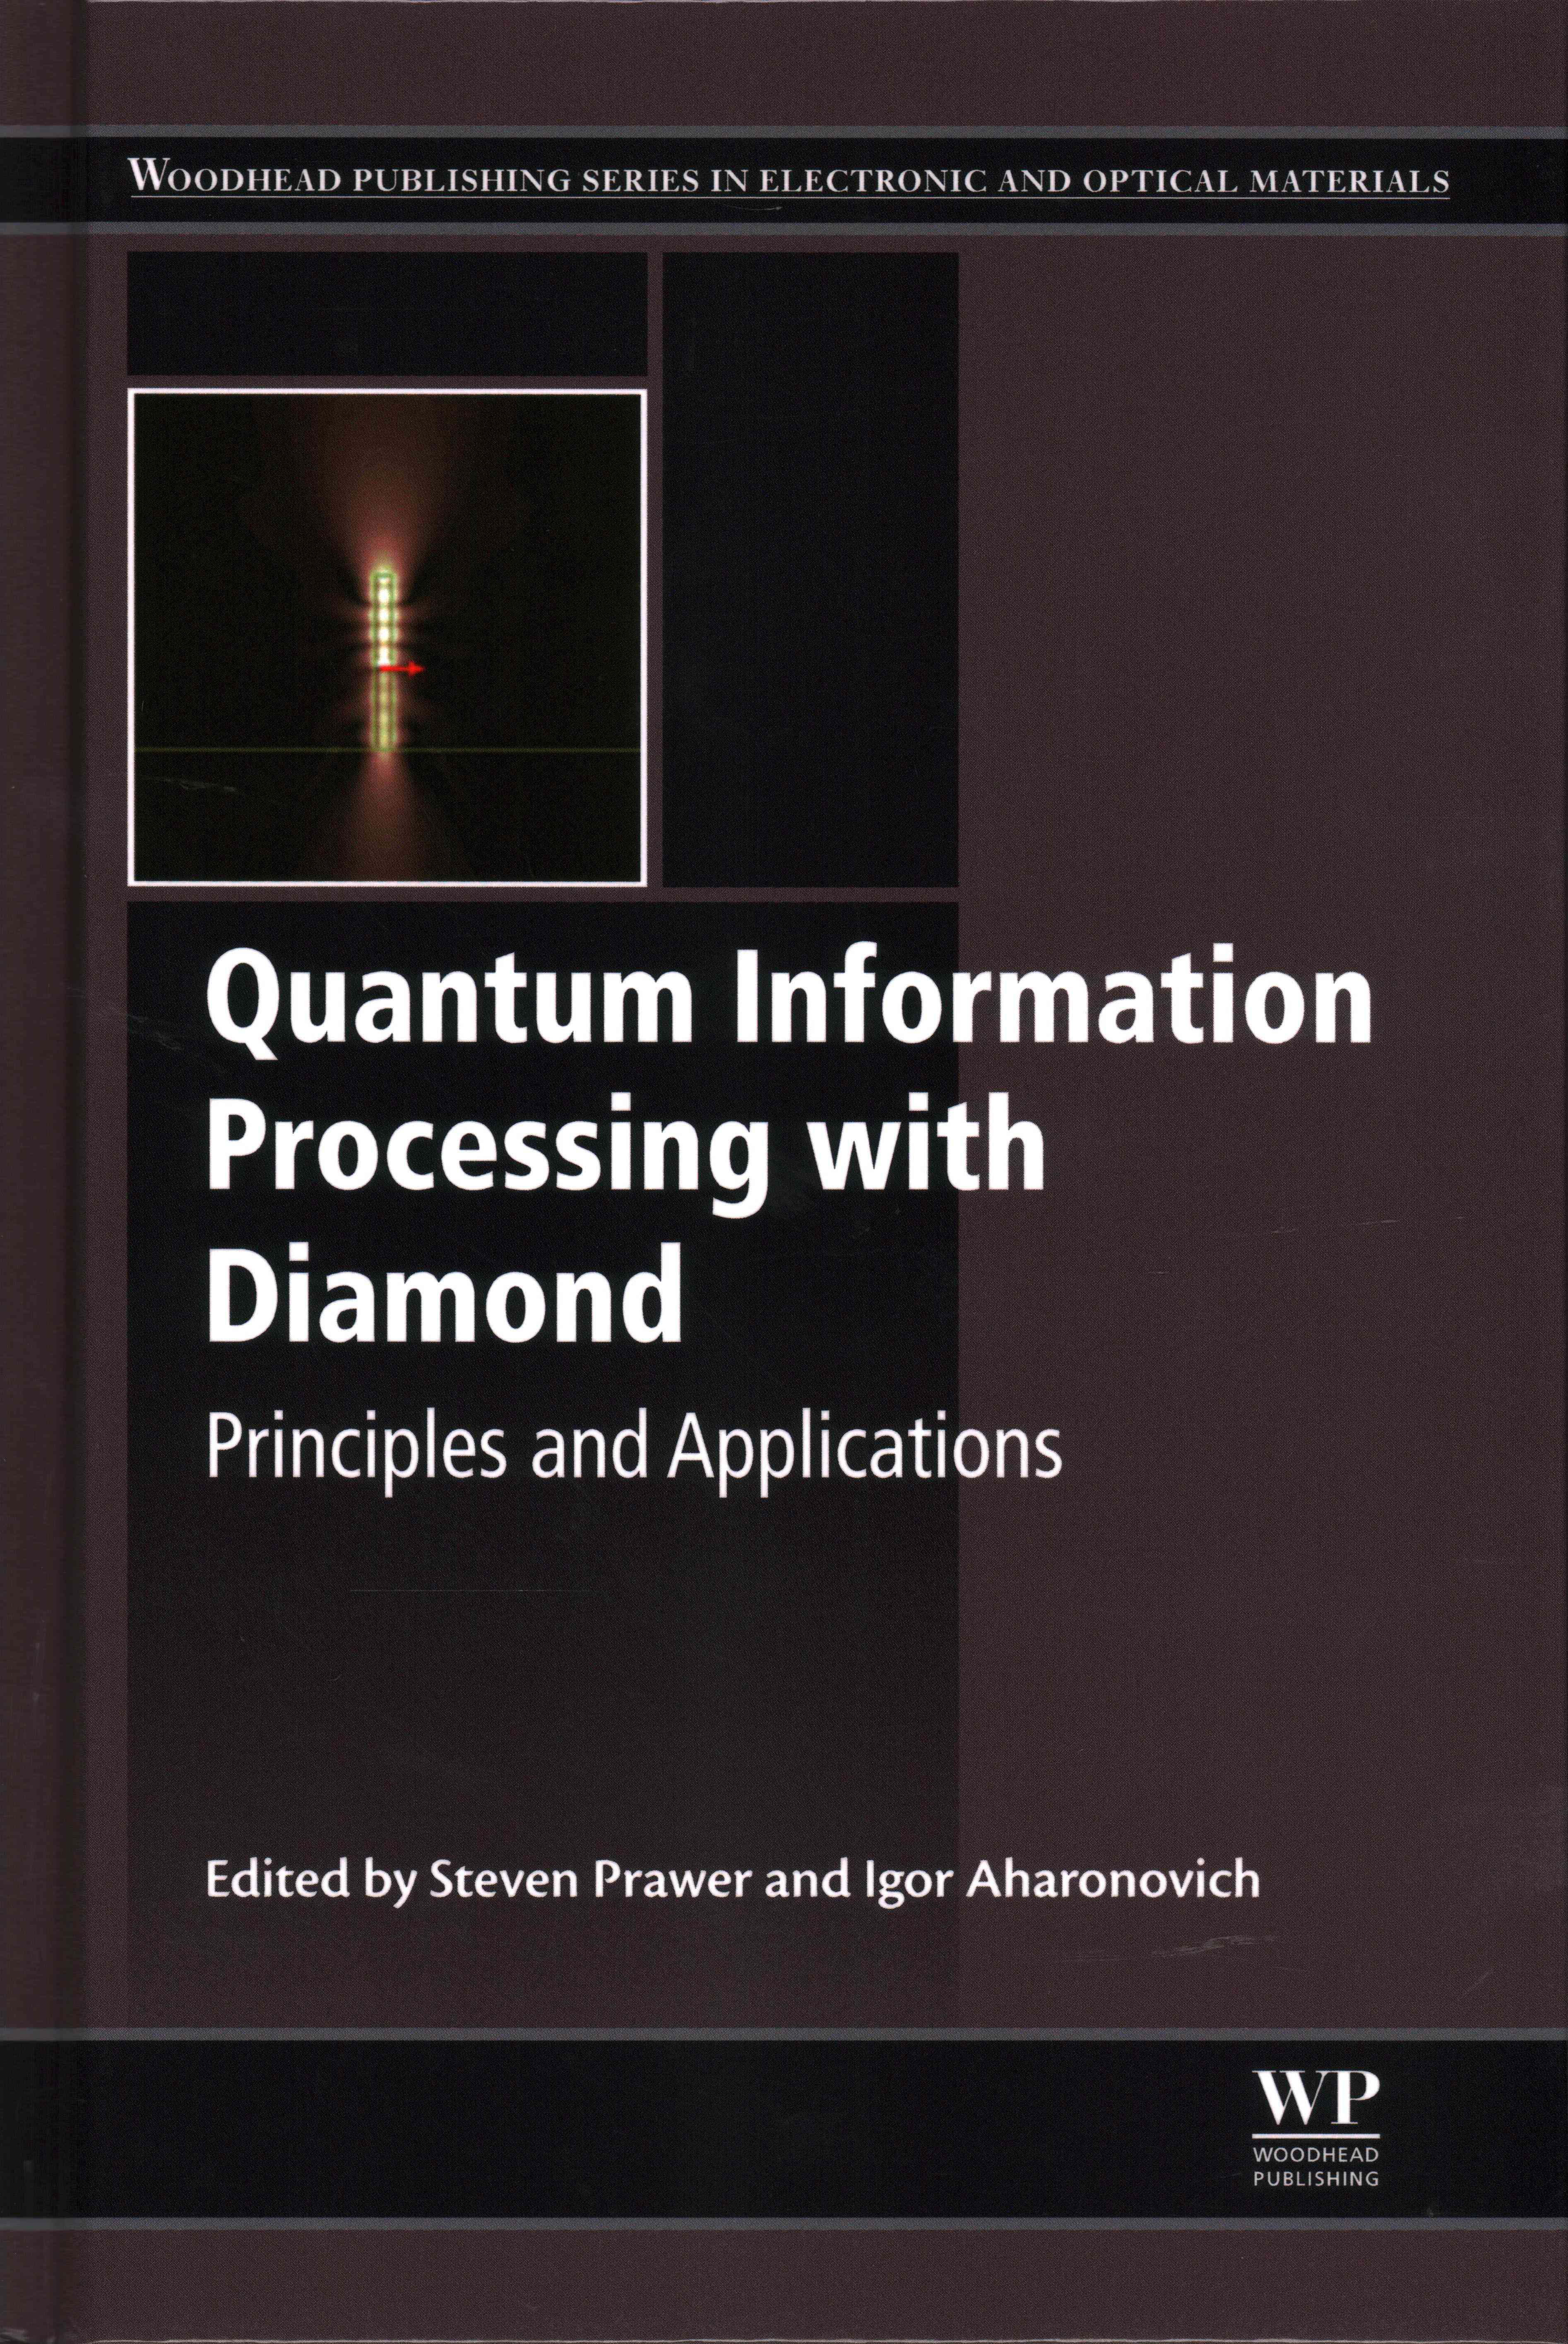 Quantum Information Processing With Diamond By Prawer, Steven (EDT)/ Aharonovich, Igor (EDT)